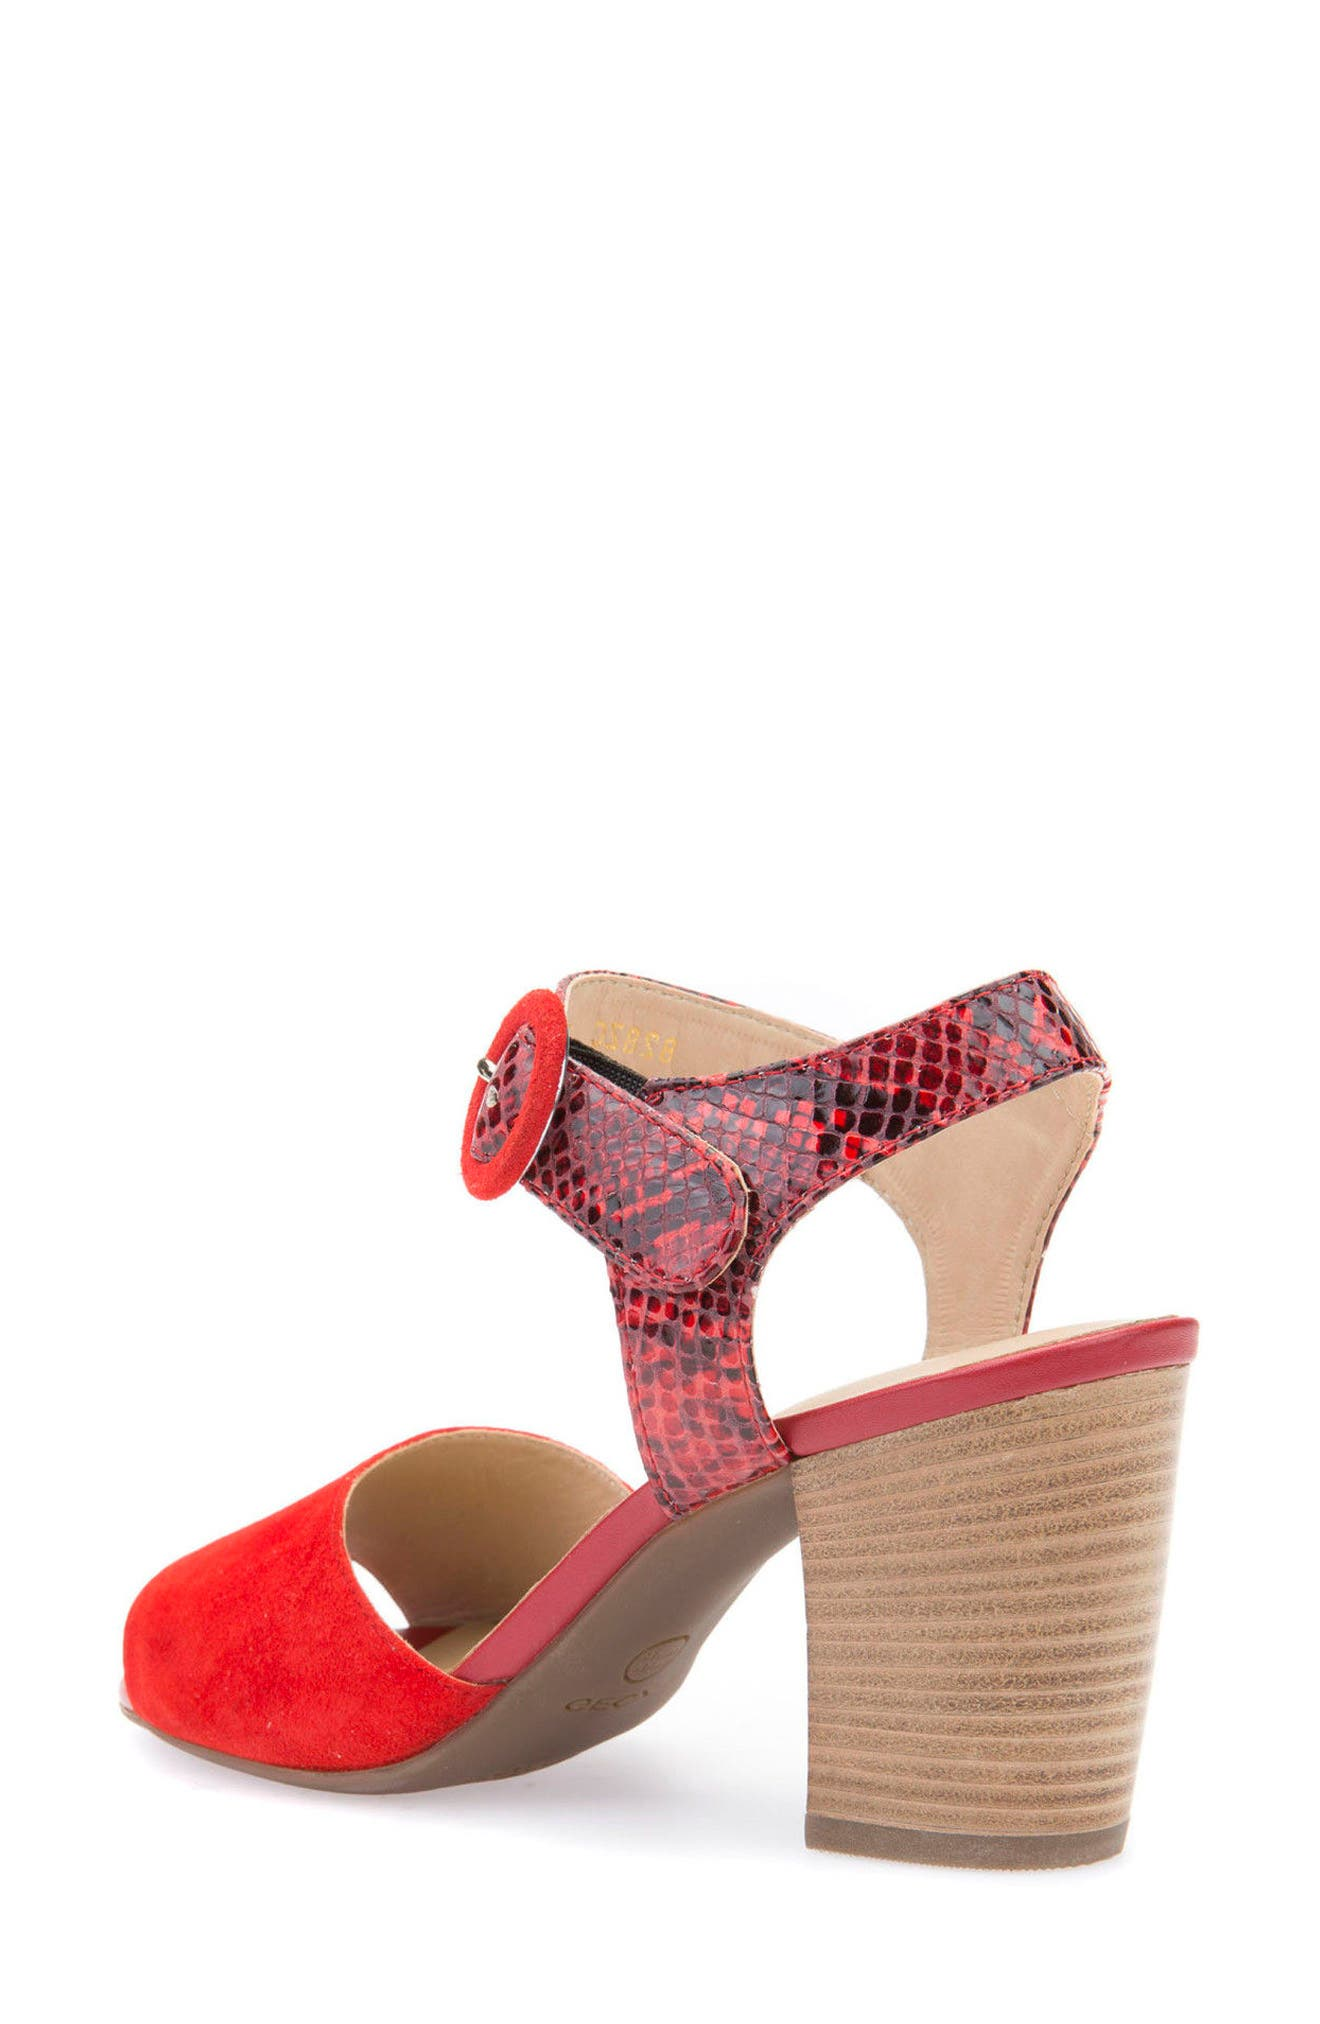 Eudora Block Heel Sandal,                             Alternate thumbnail 2, color,                             Scarlet Suede